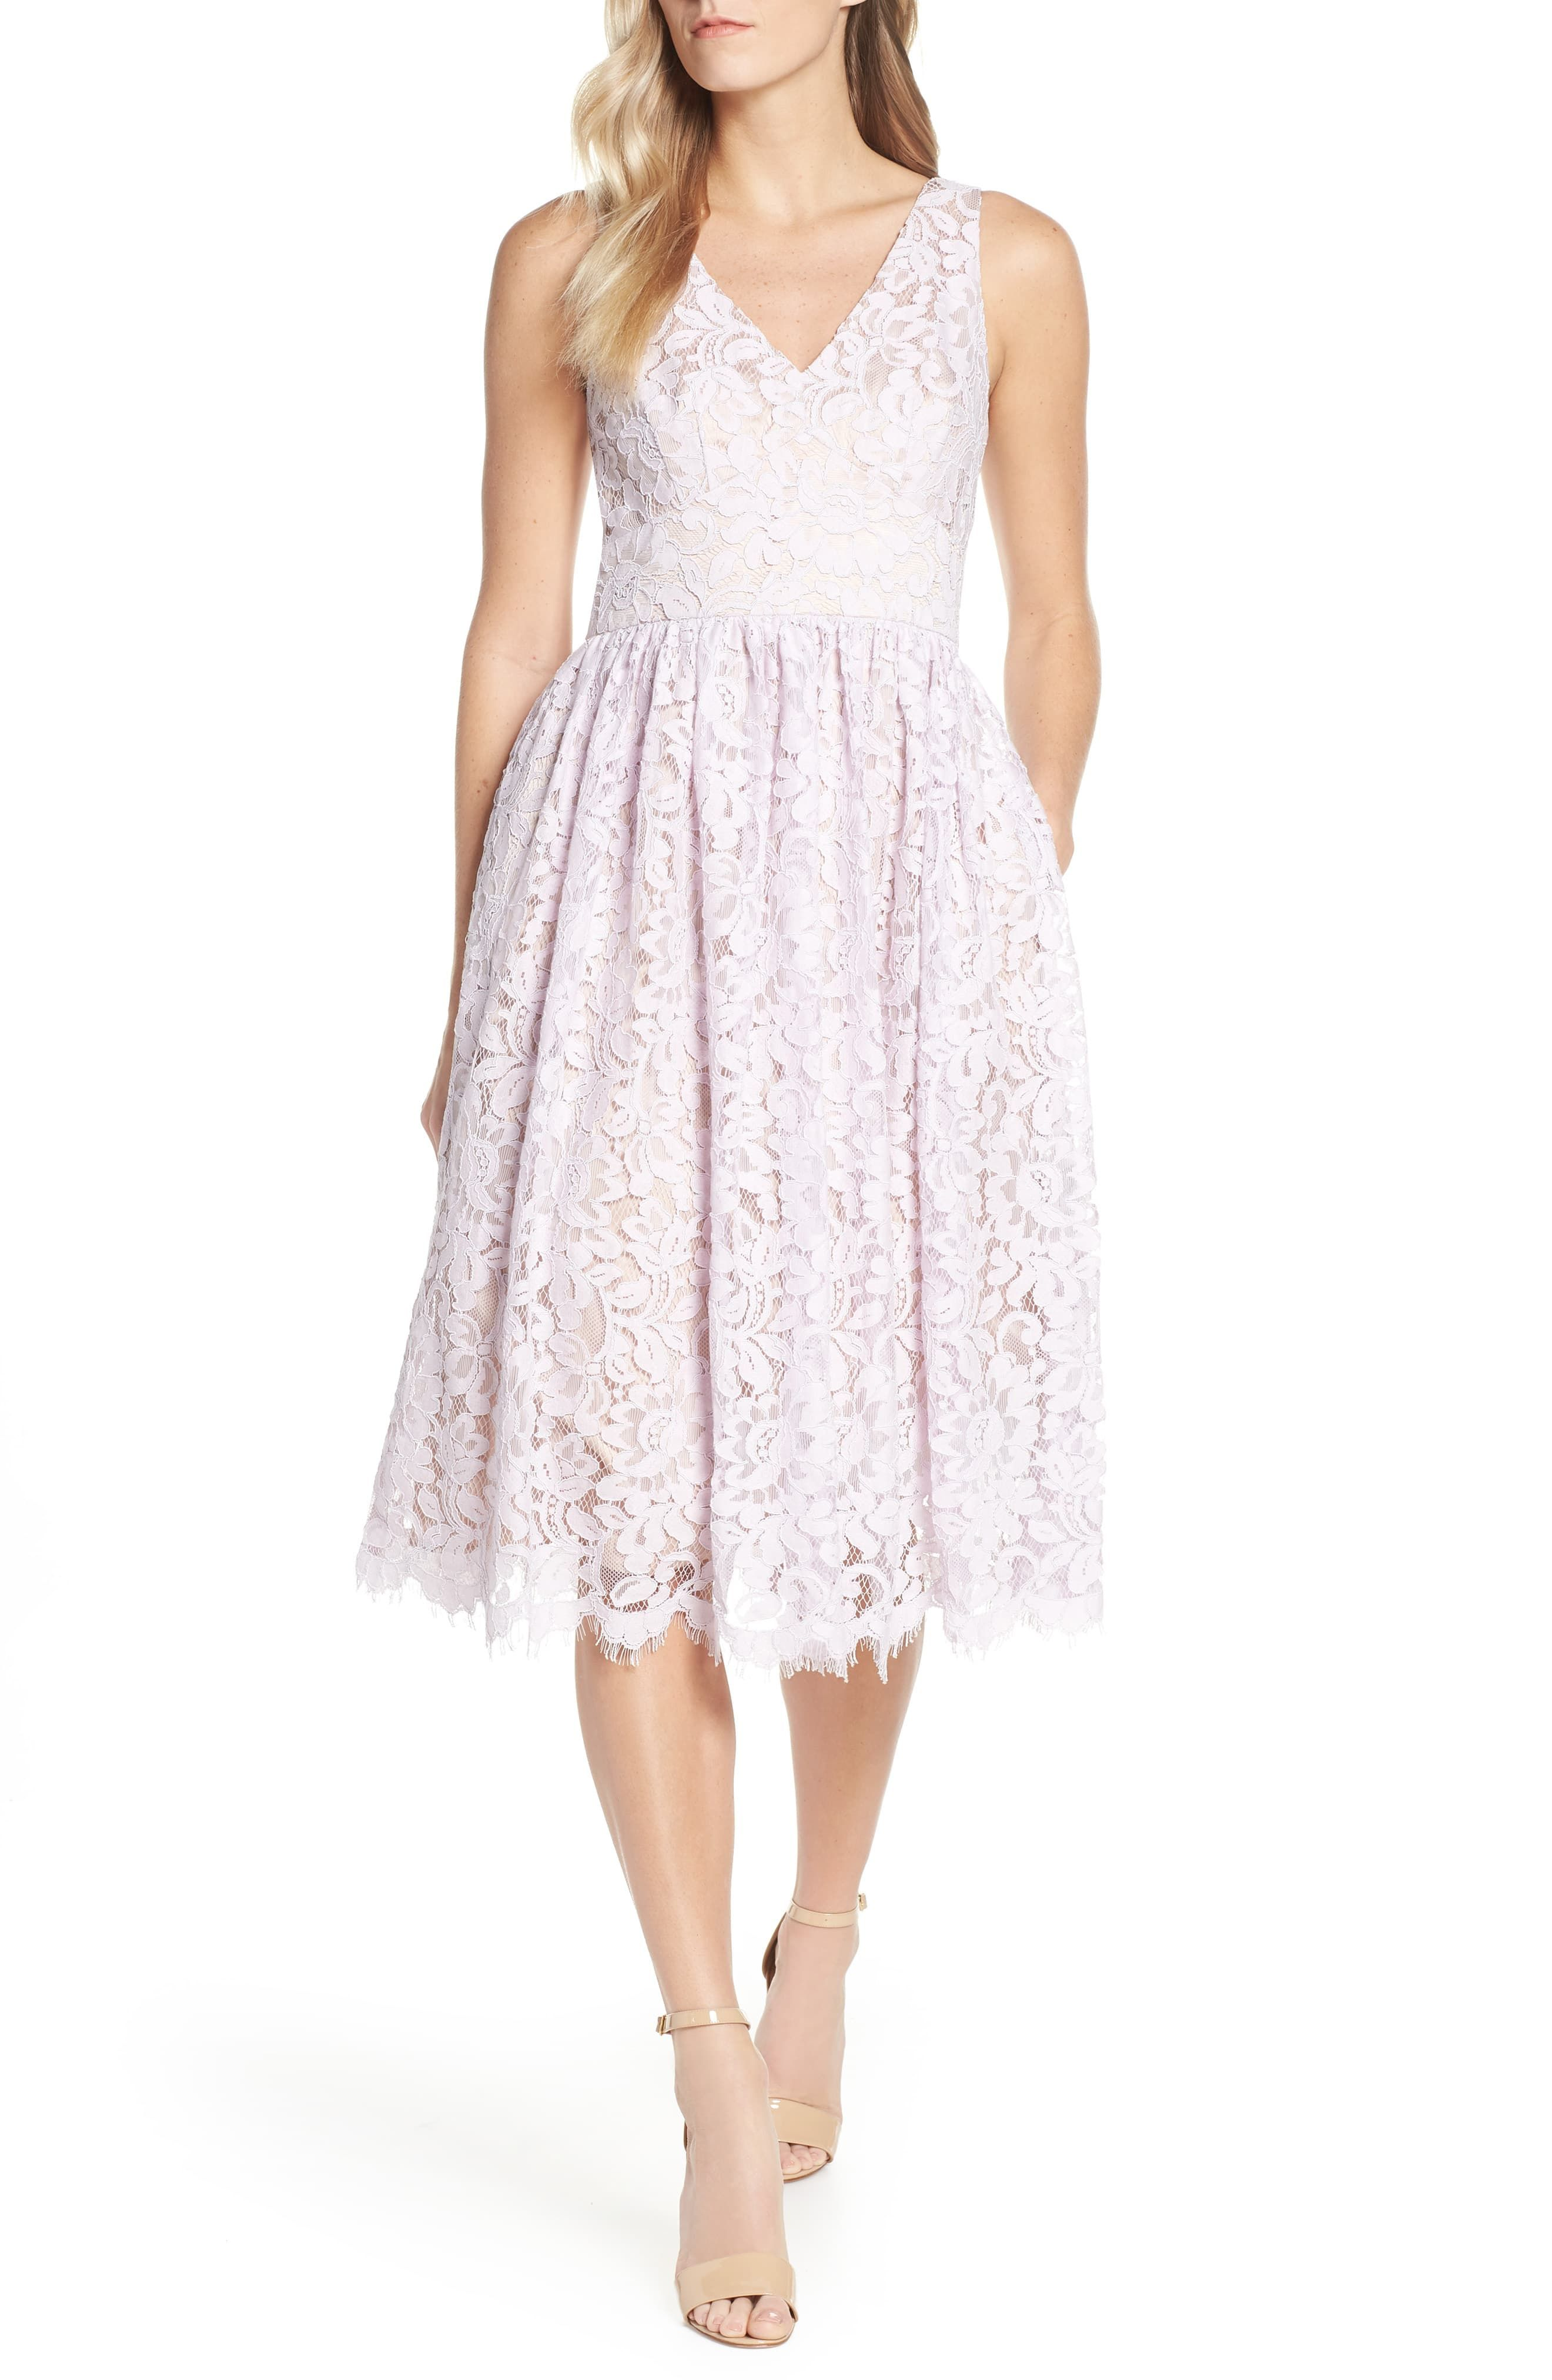 Eliza J Floral Lace Dress In 2019 Products Floral Lace